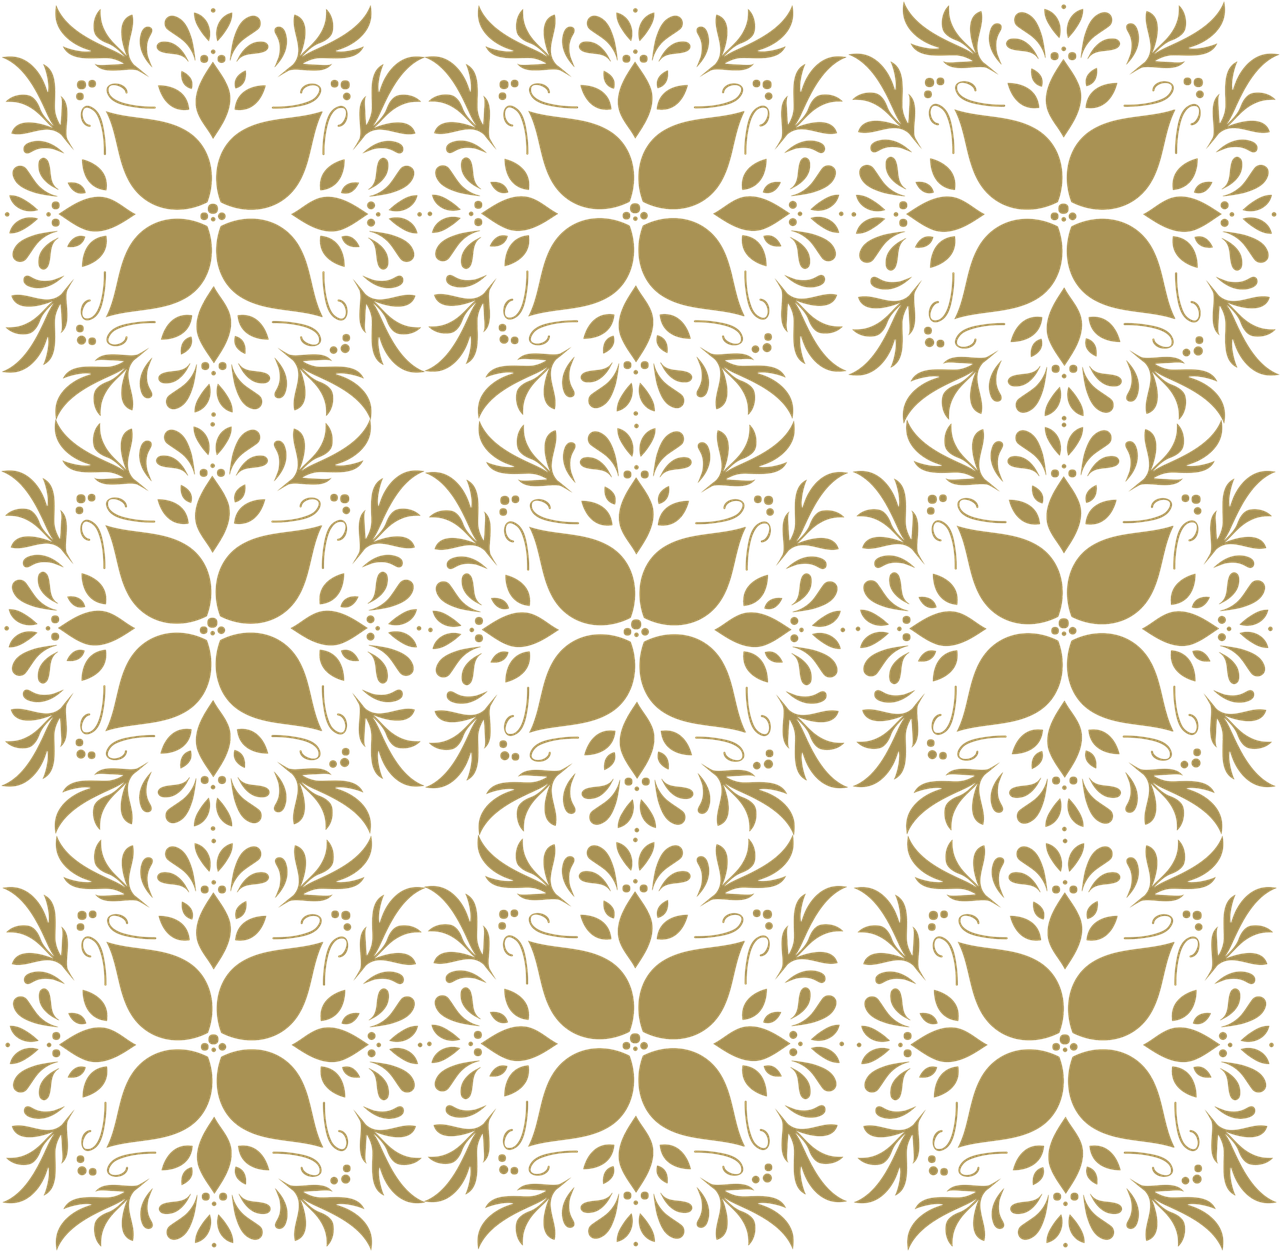 Pattern Gold Floral Free Image On Pixabay